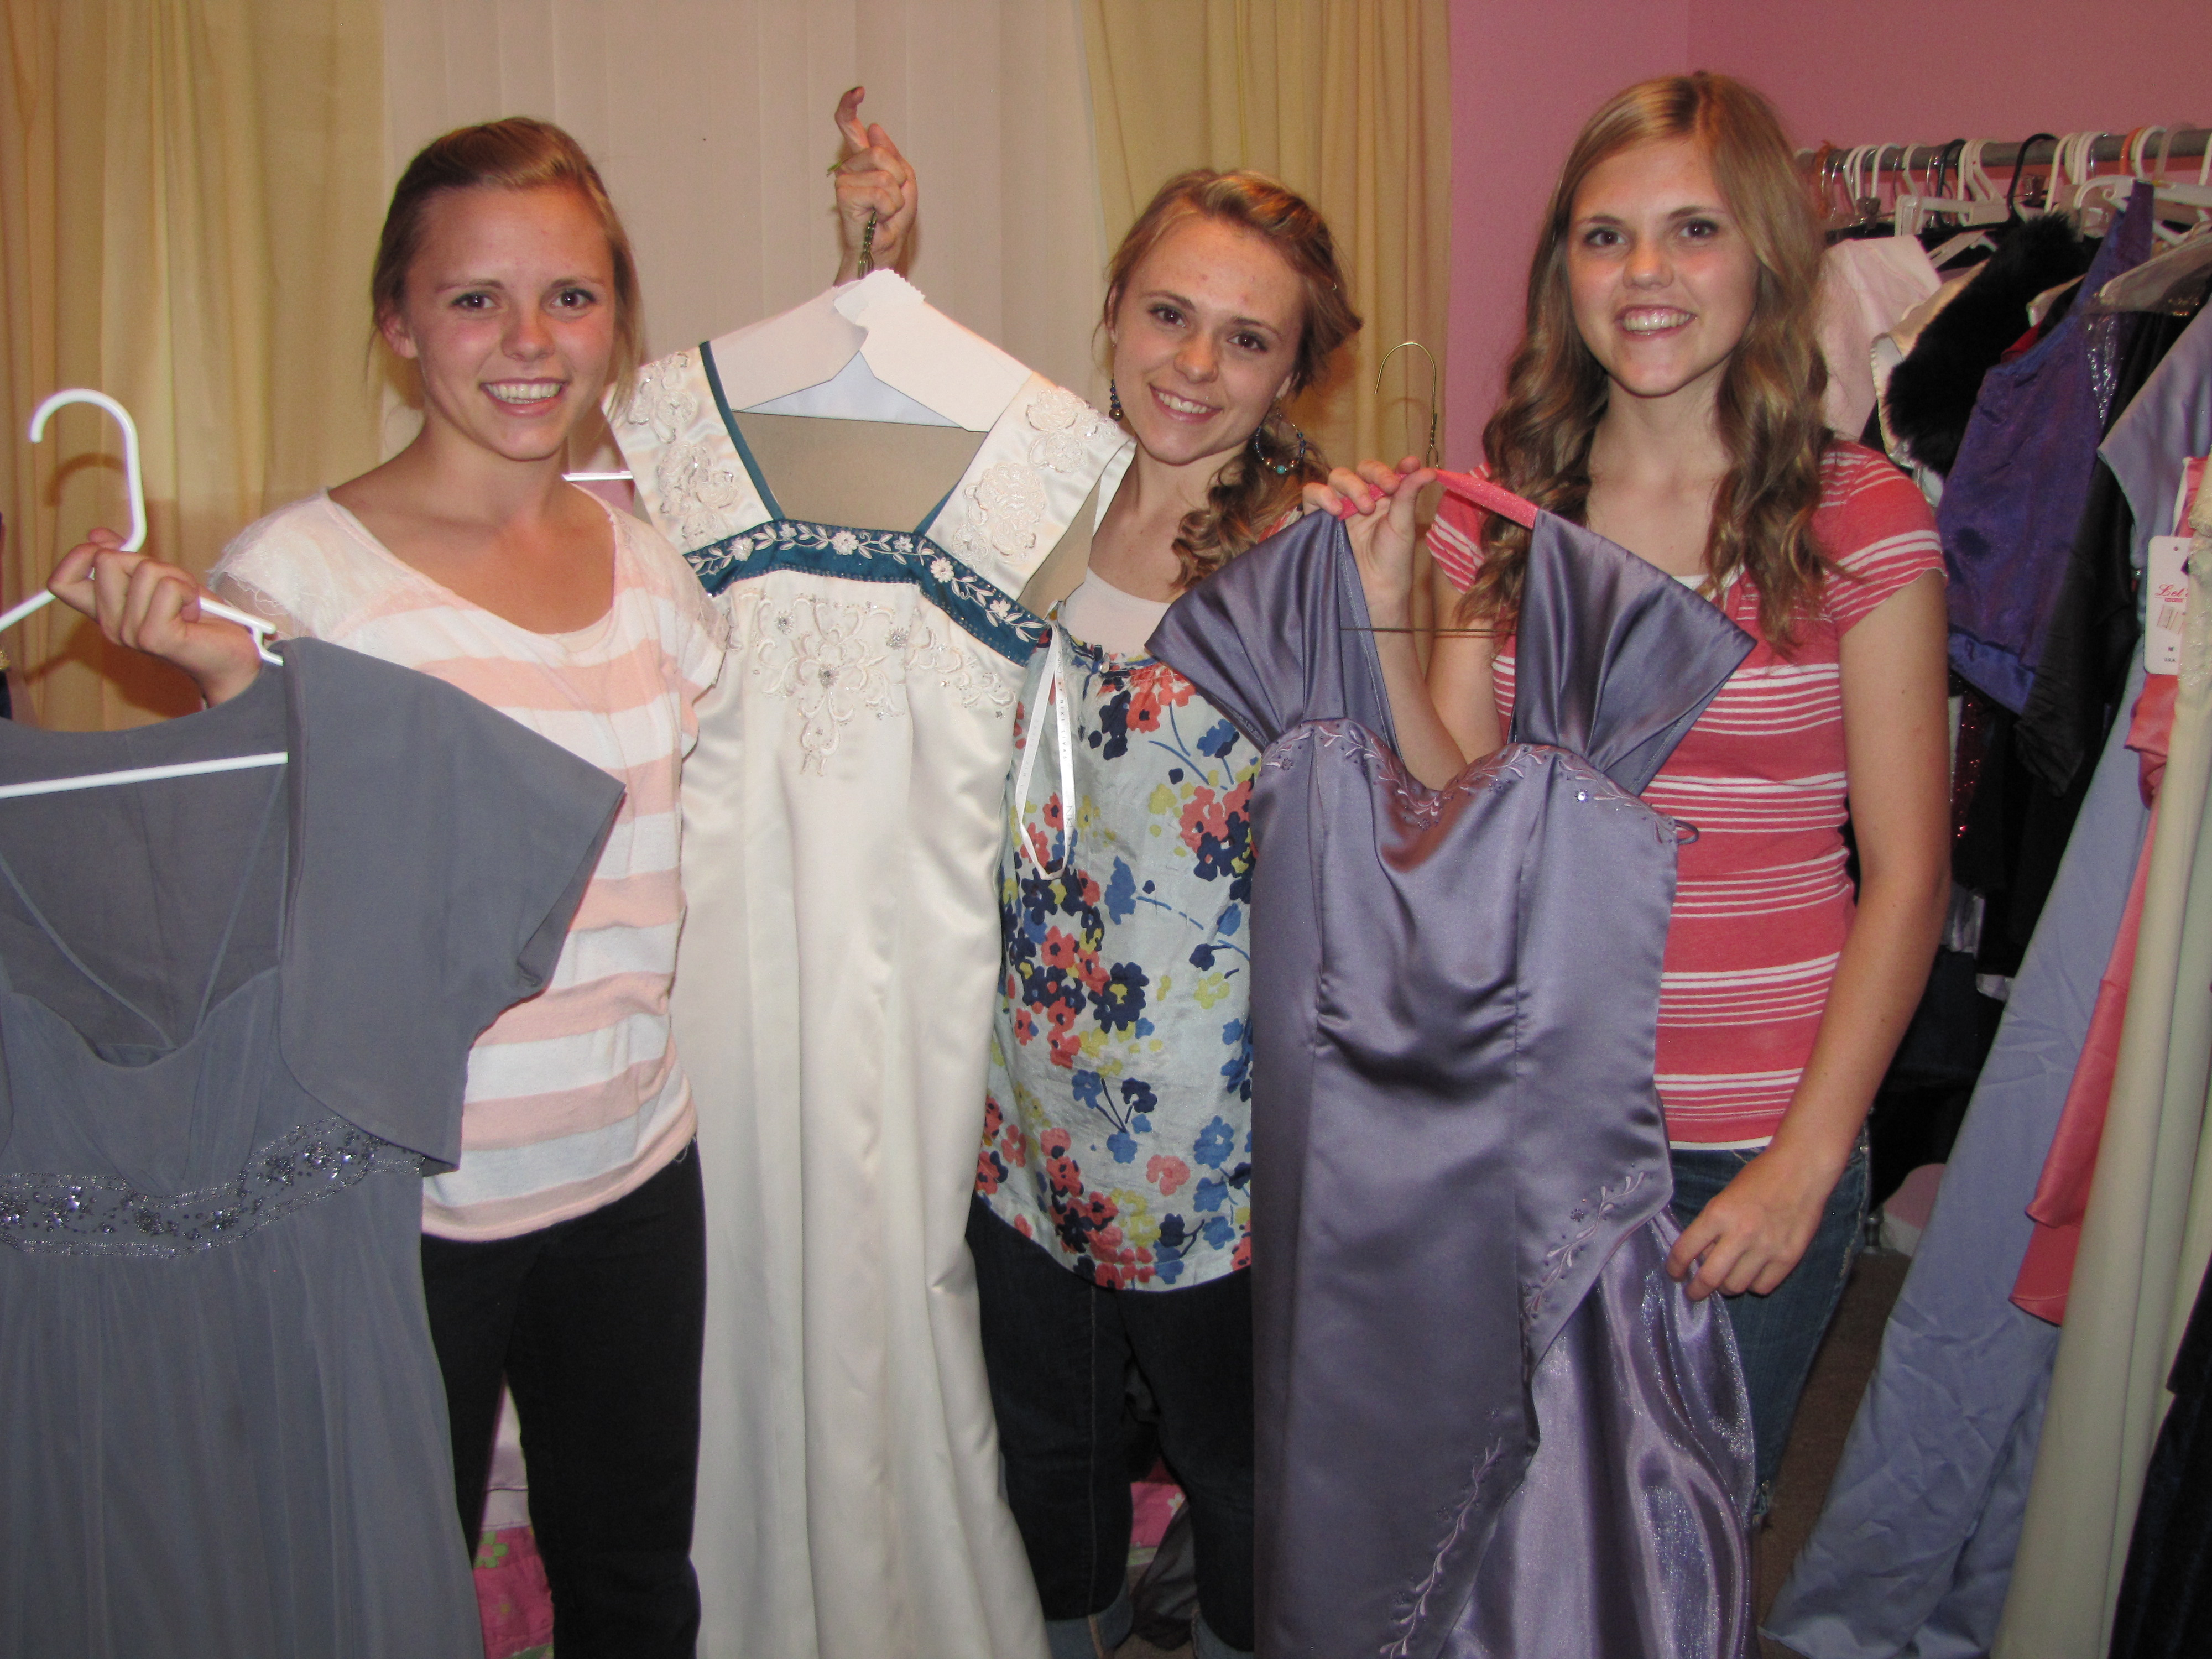 Mormon Modesty Makes It Challenging To Find A Prom Dress ...